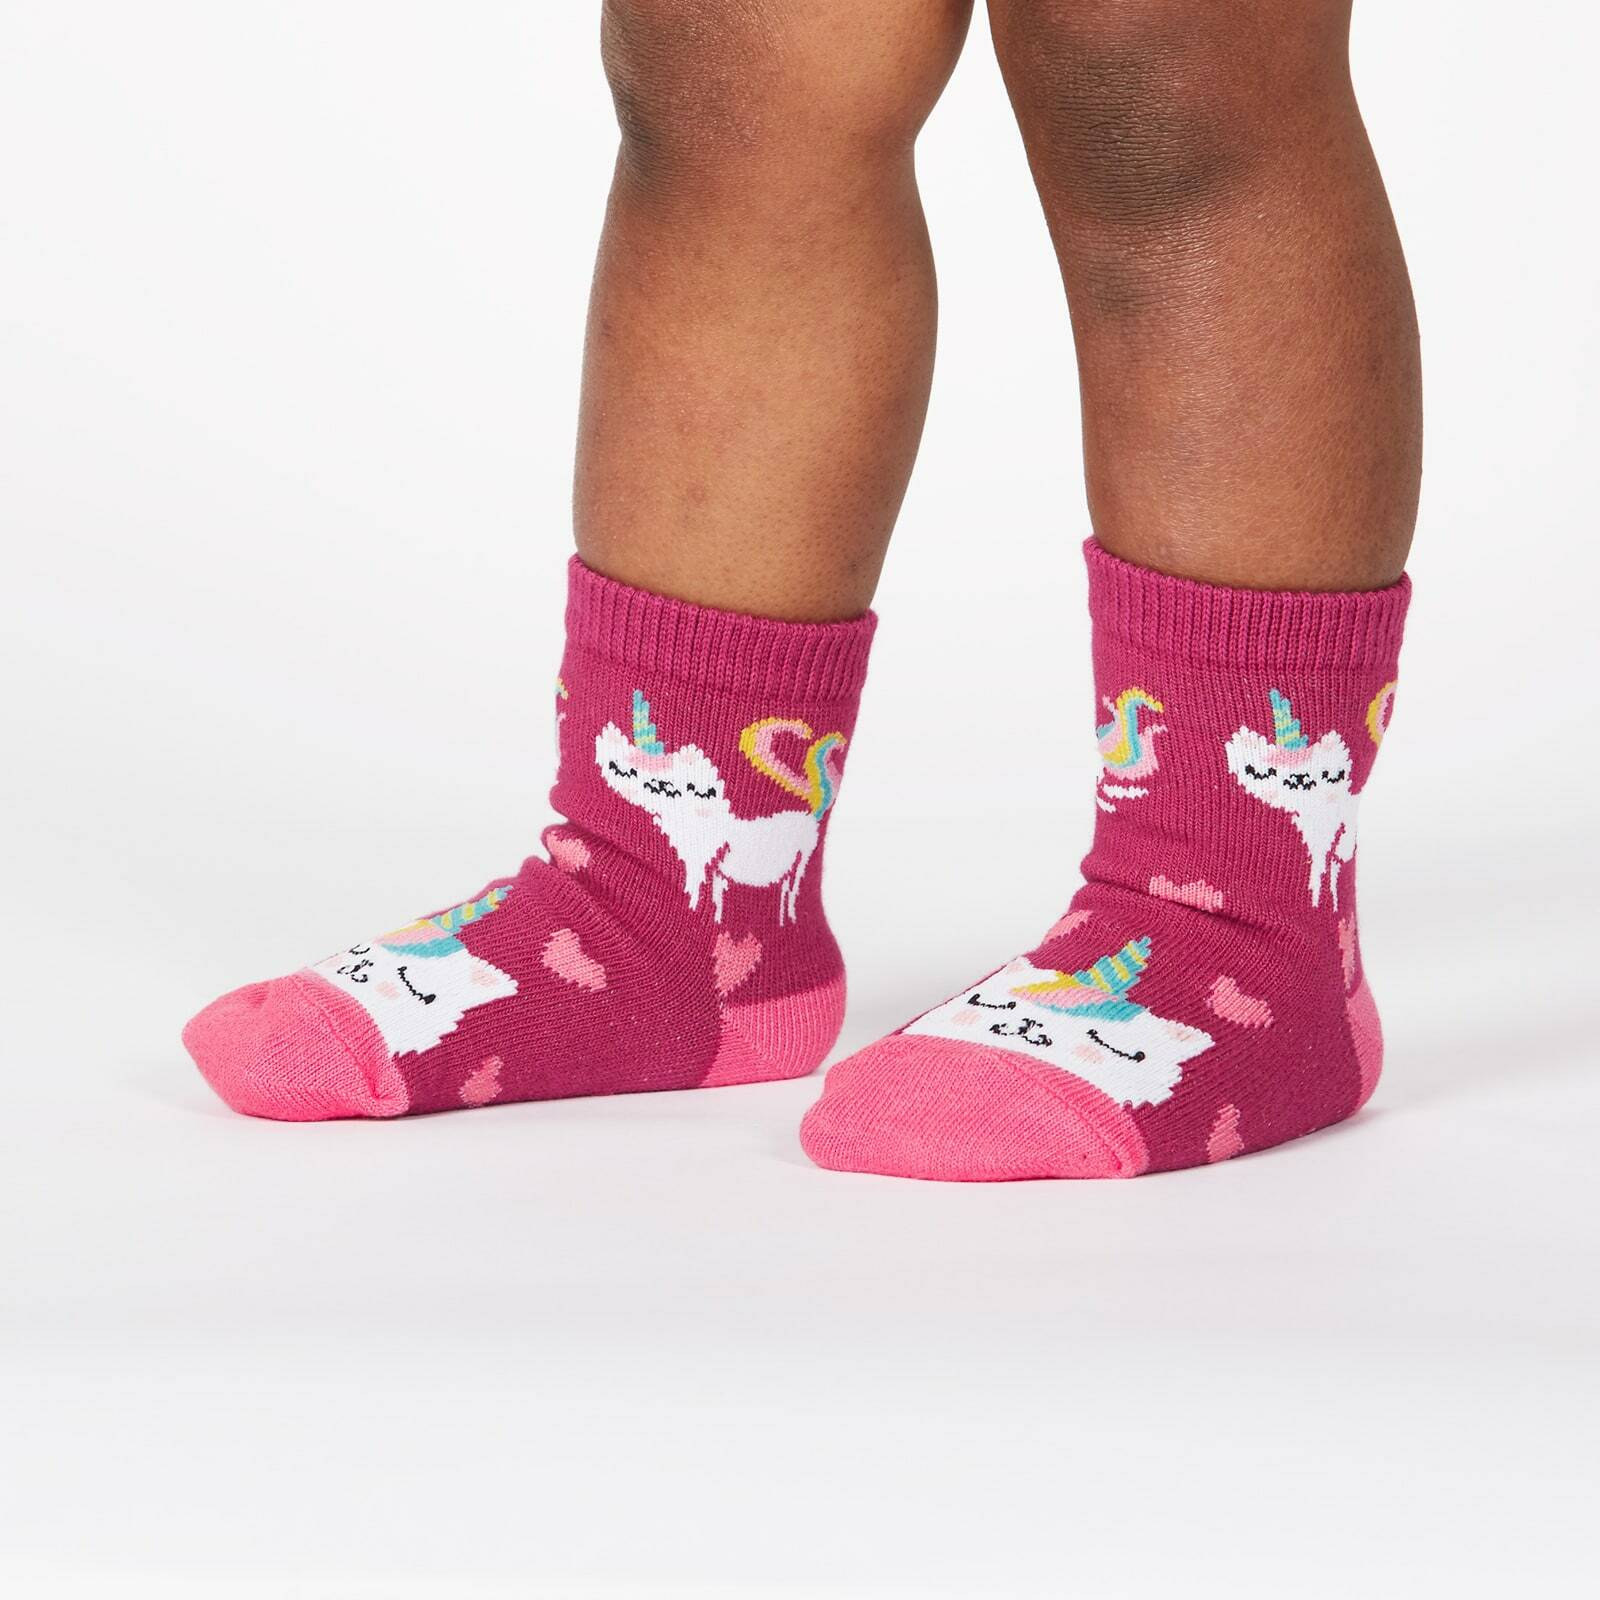 model wearing Look at Me Meow - Colorful and Cute Unicorn Kitty Crew Socks Pink - Toddler